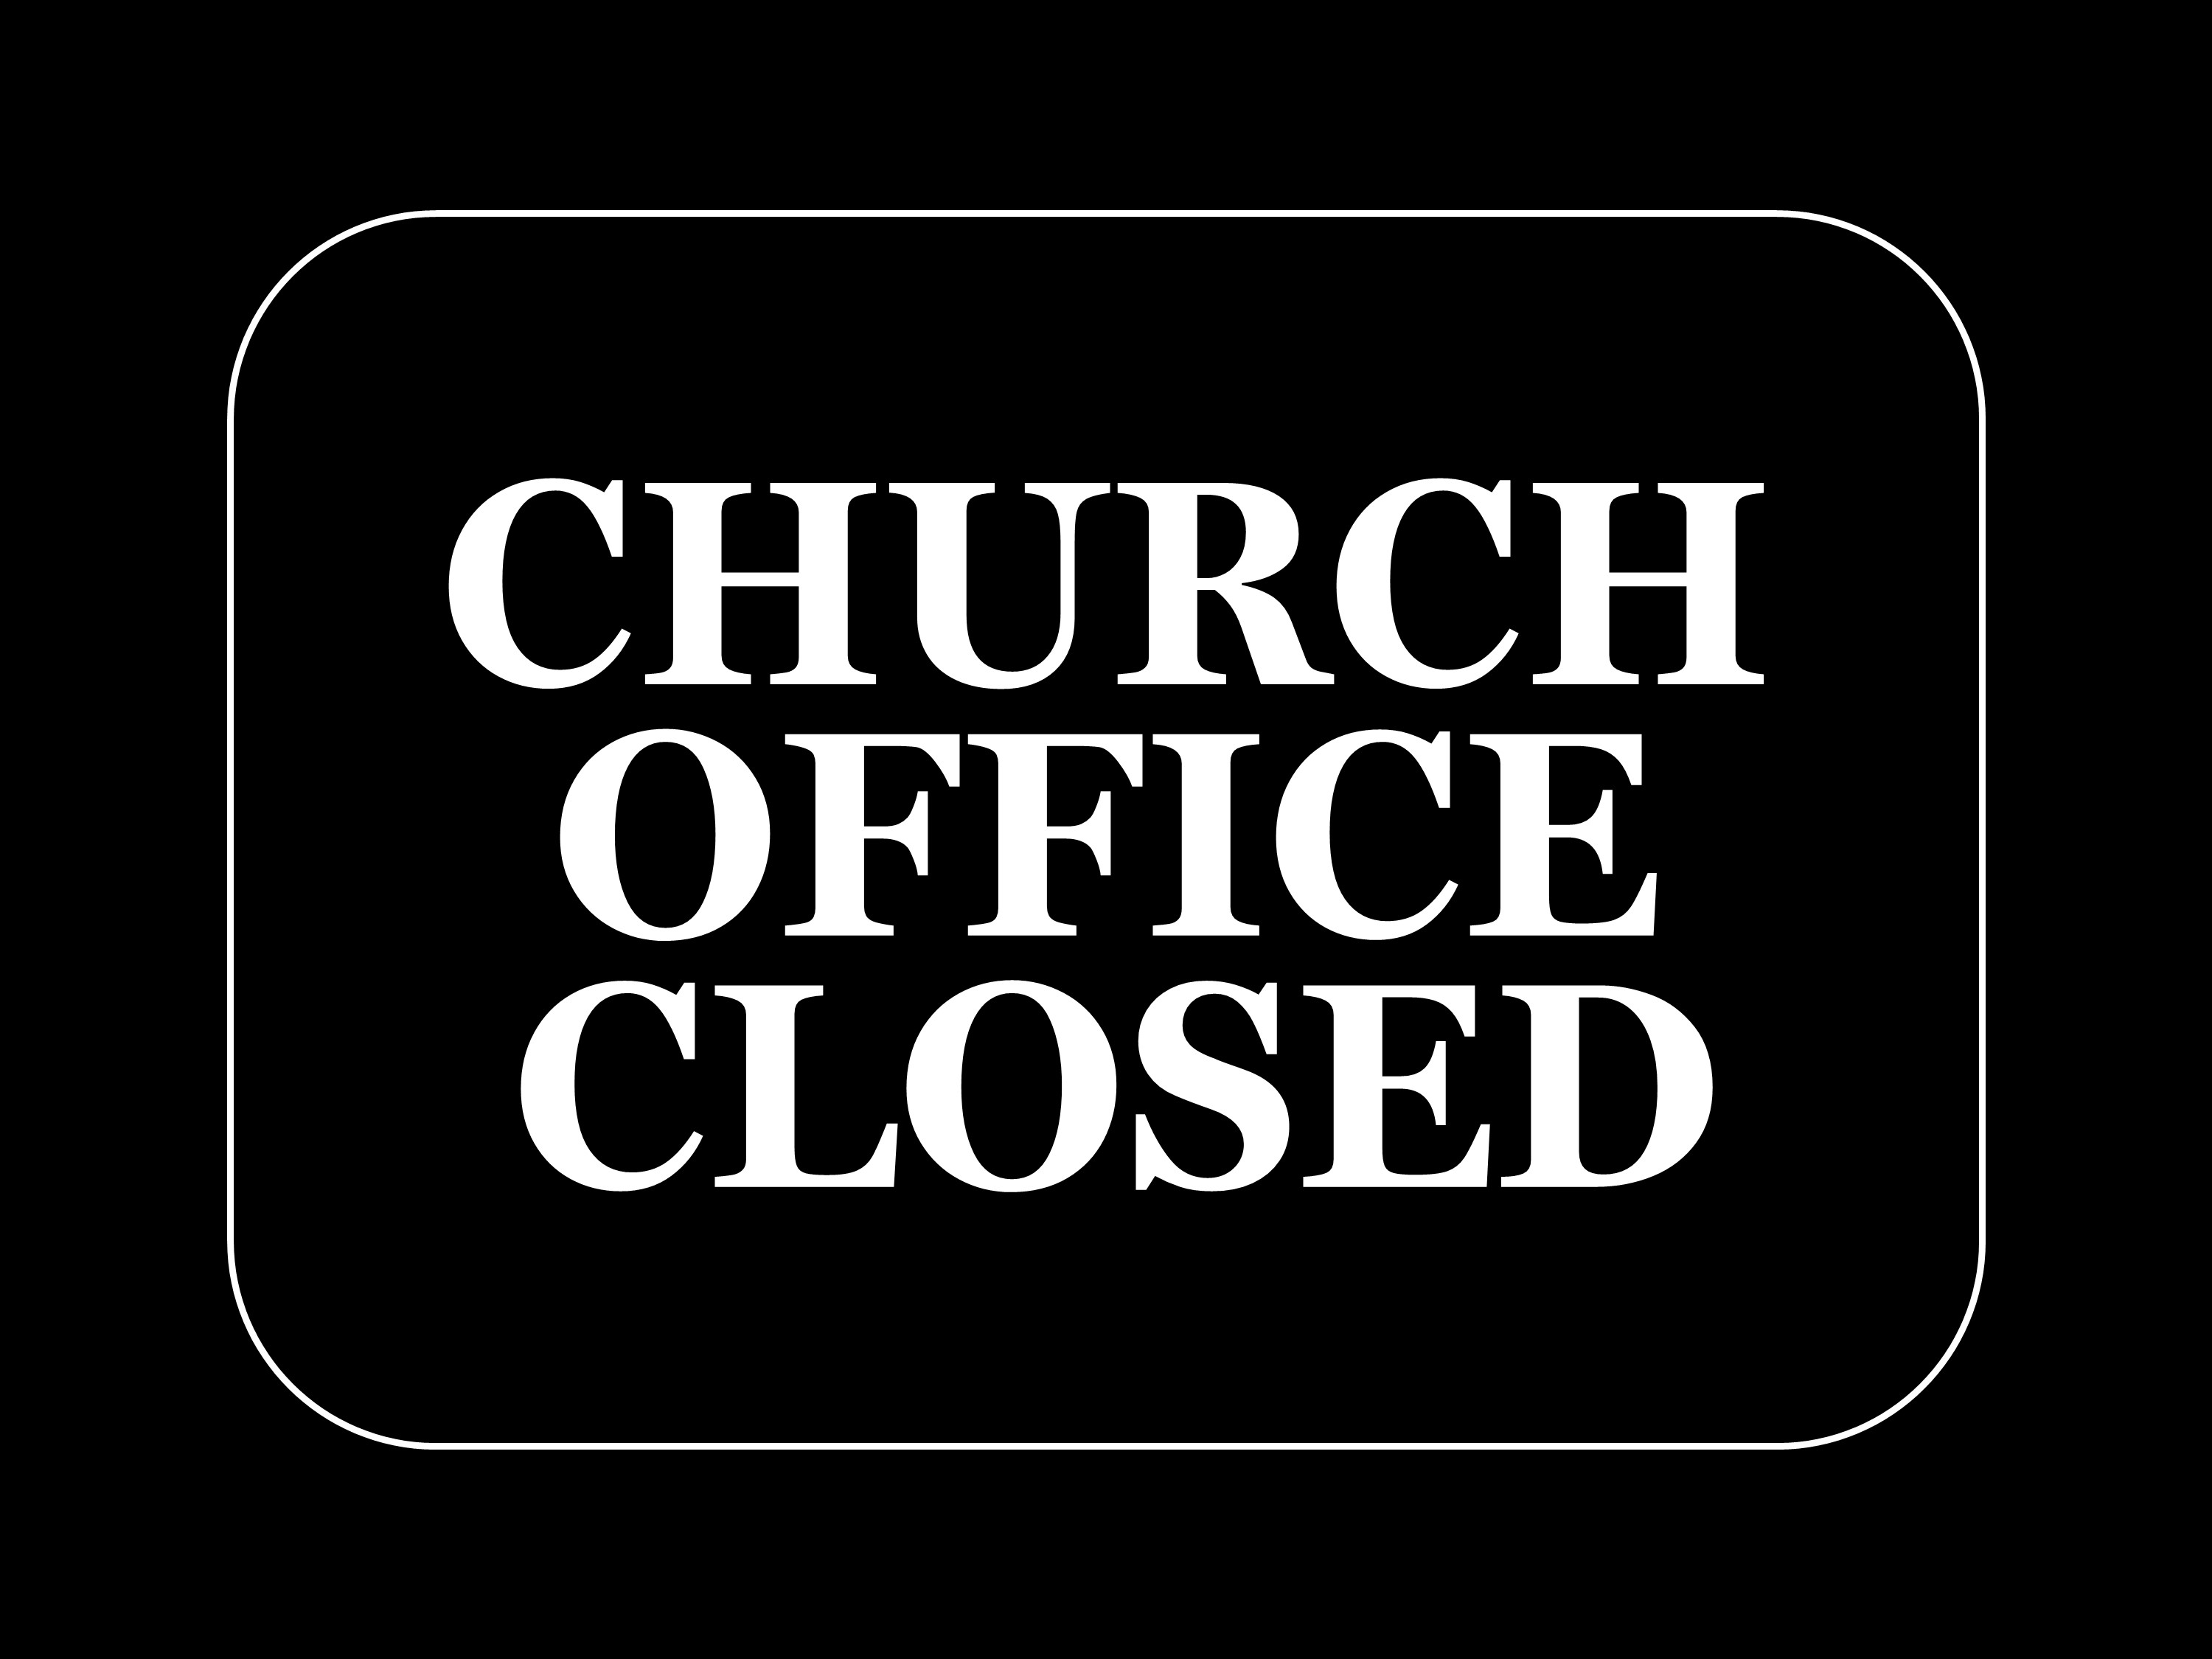 Church office closed image